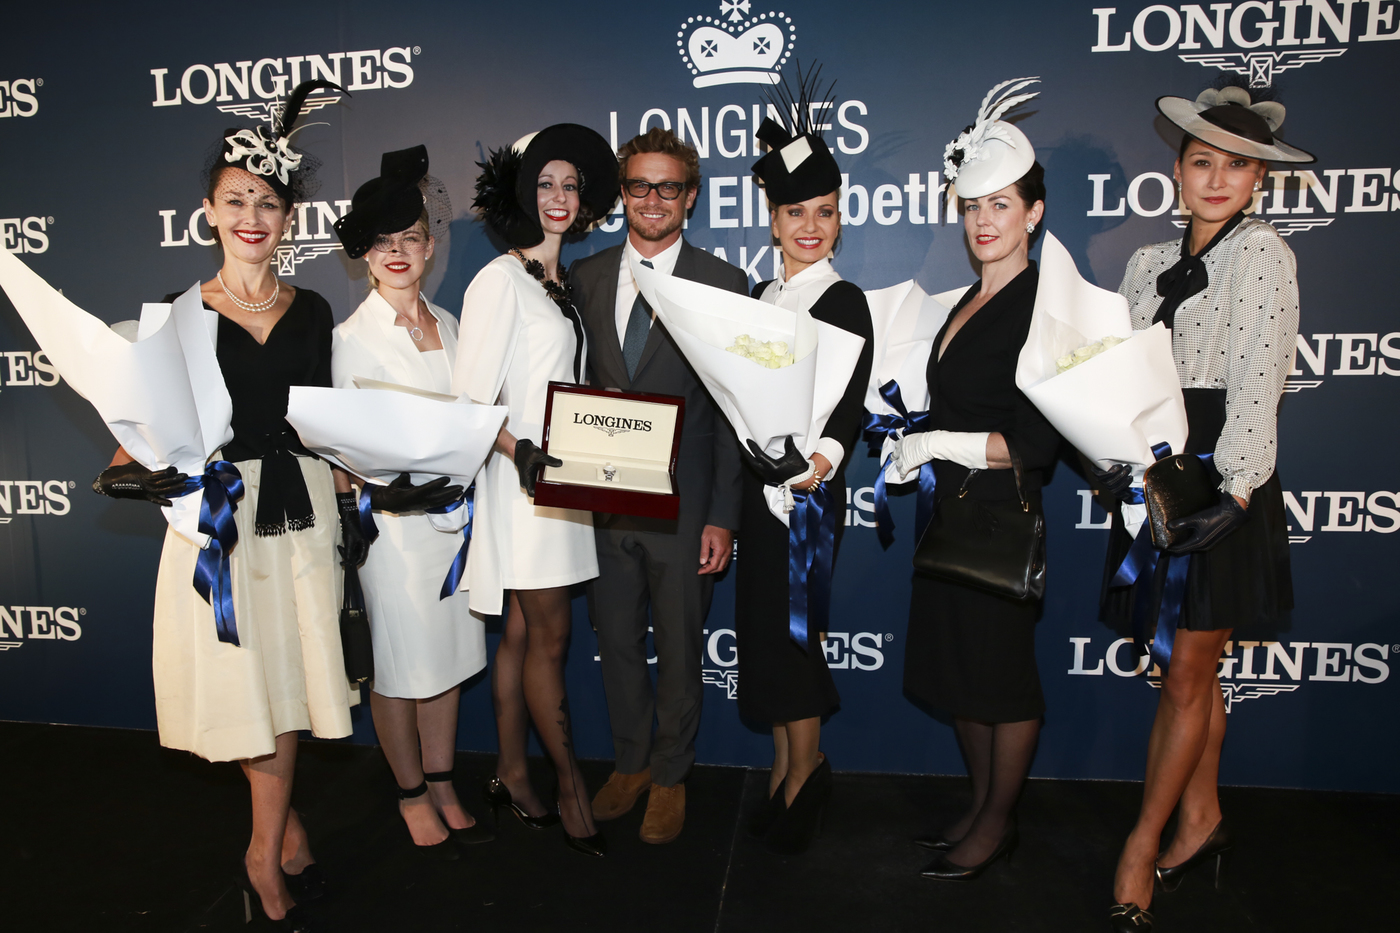 Longines Flat Racing Event: 2014 edition of the Longines Queen Elizabeth Stakes Raceday with the presence of Simon Baker 7